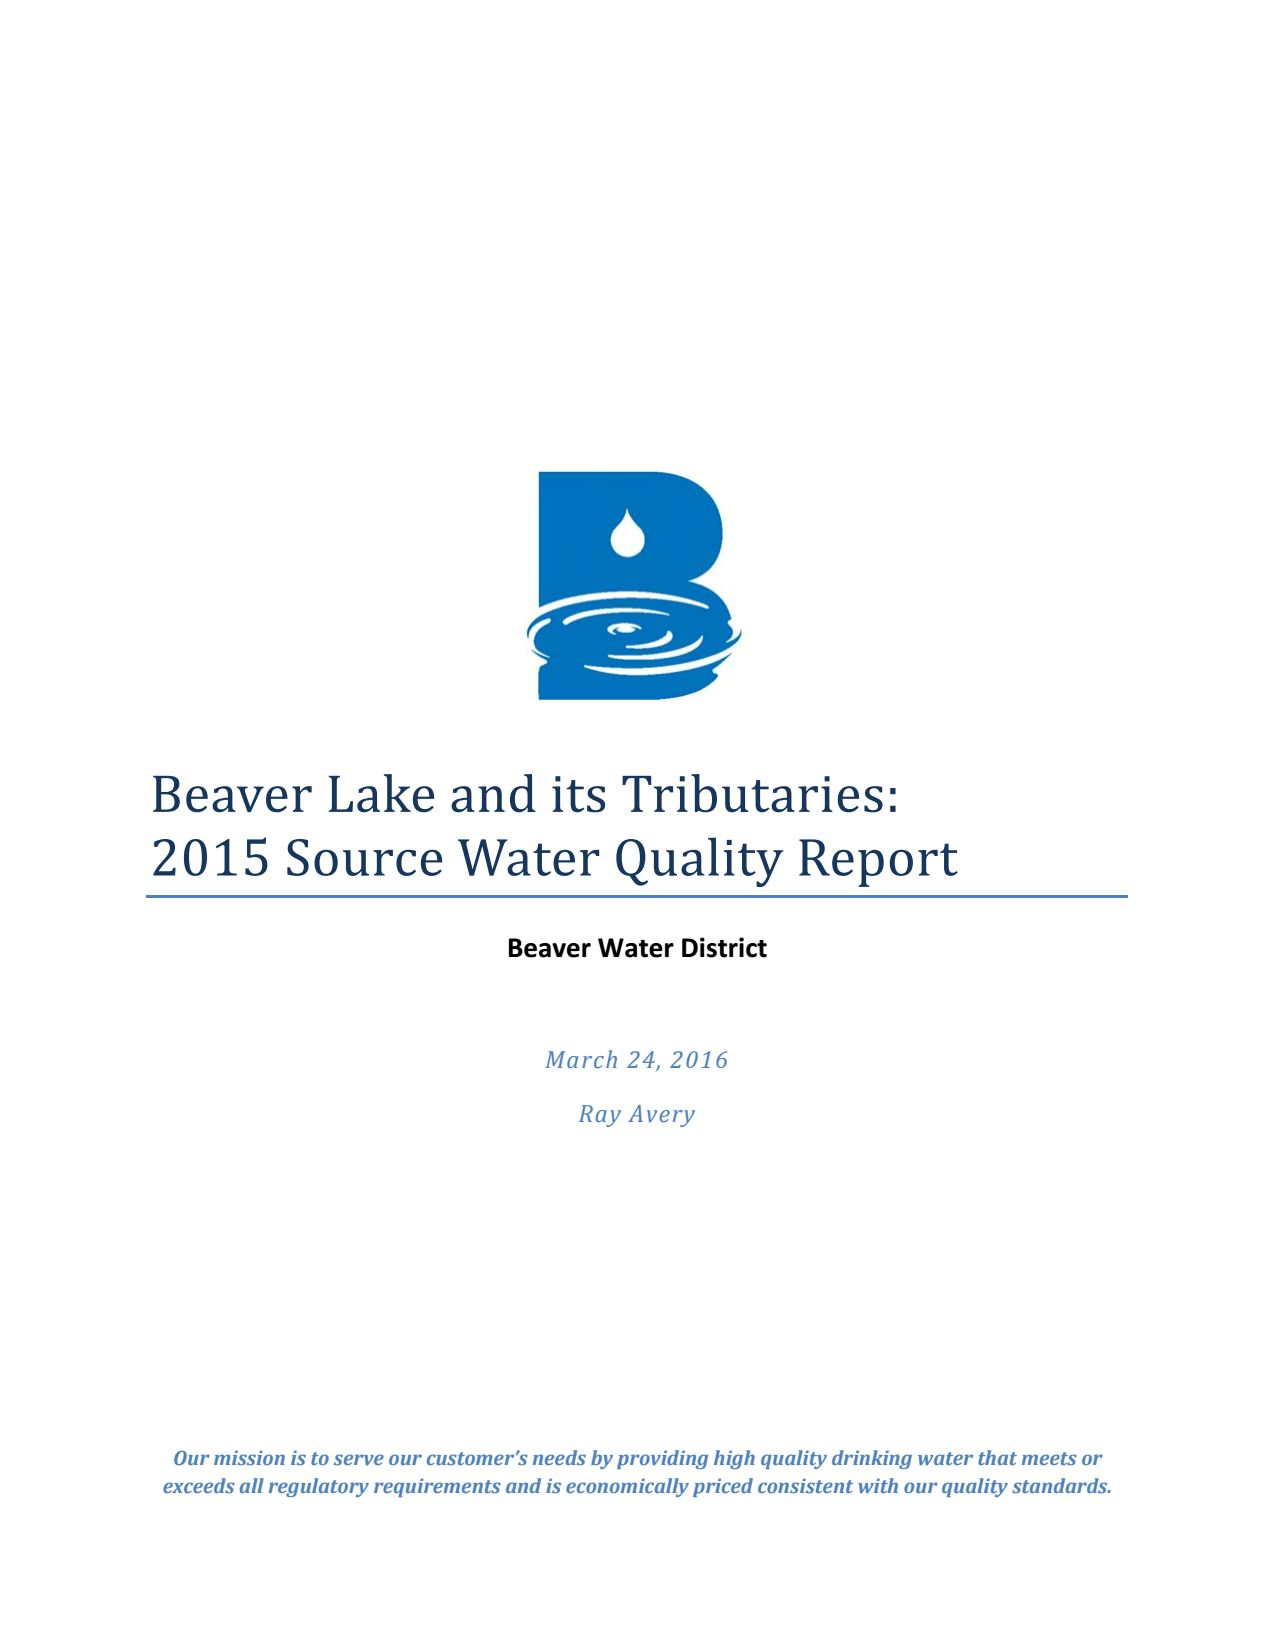 2015 Beaver Lake Water Quality Report